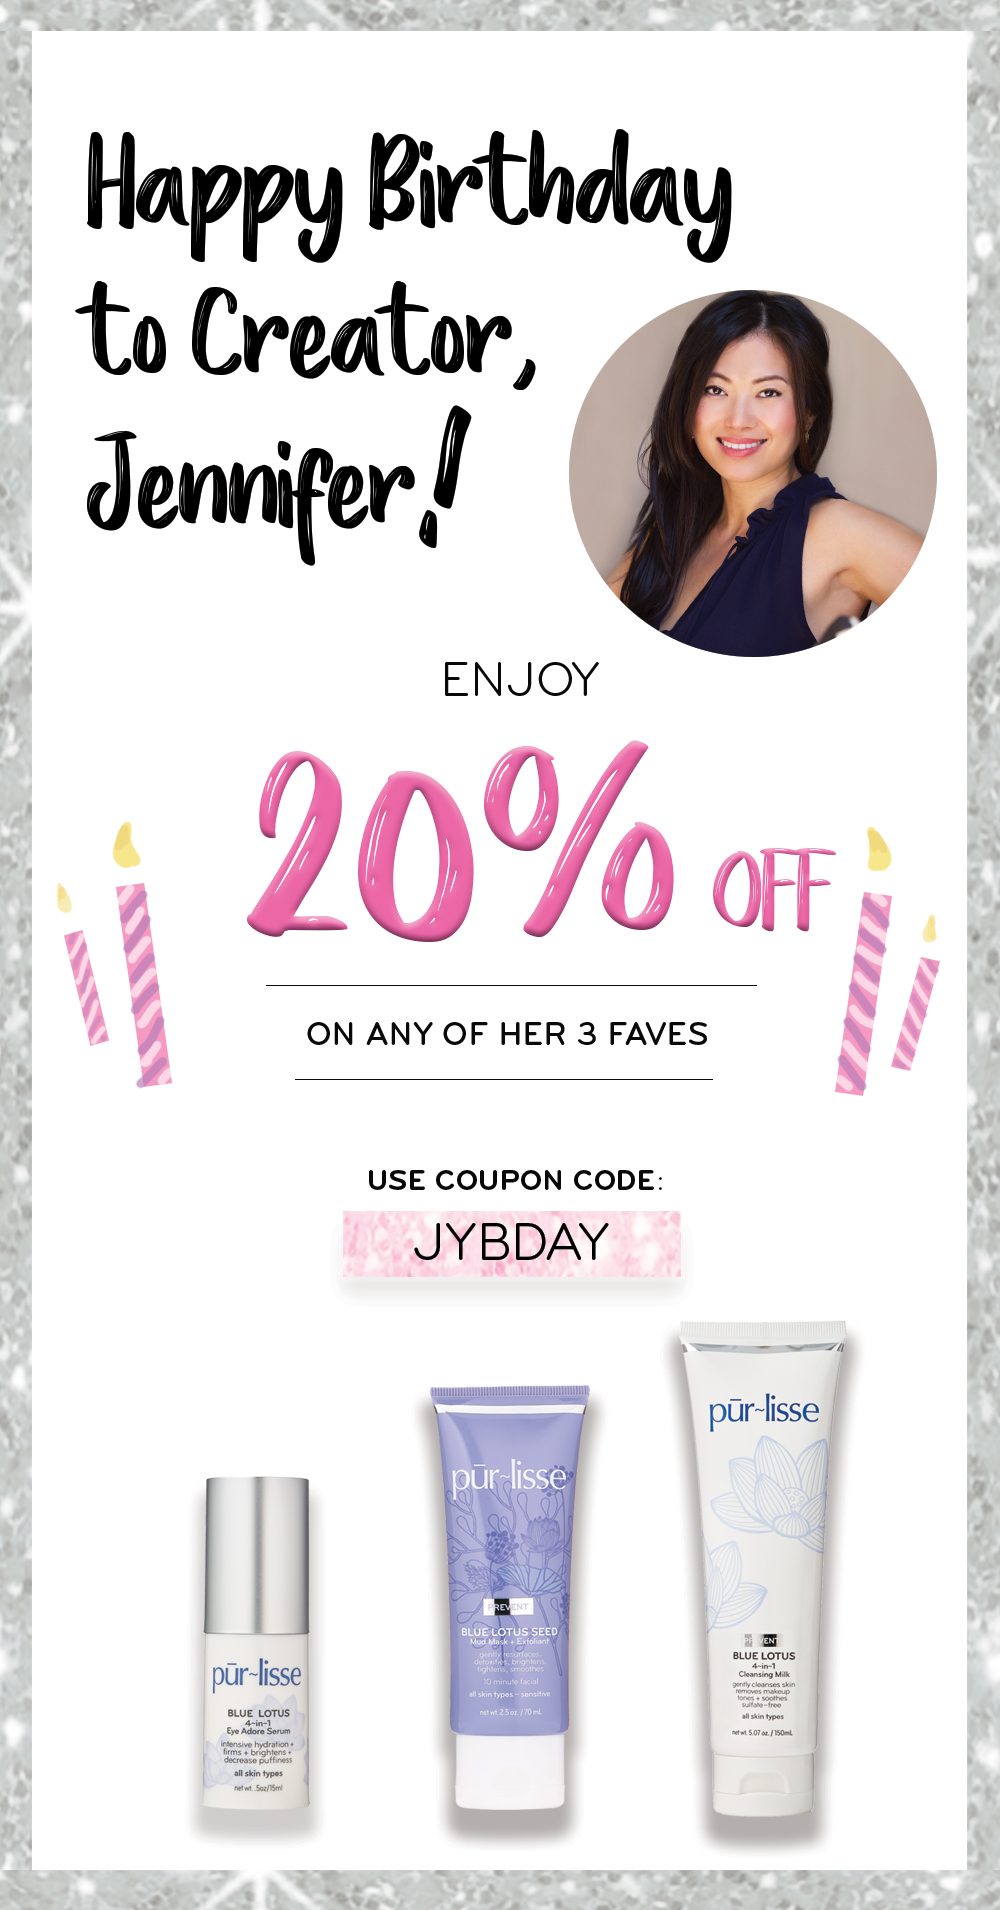 Pur‑lisse ~ It's their Creator's Birthday!🎈 Save 20% ~   Enjoy 20% Off any of Jennifer's 3 Favorites  $36 - $65 with promo code: JYBDAY (Expires October 9, 2017 at 11:59 pm) + 1 free deluxe sample with $50 order + Free U.S. Shipping with $50 order & free International shipping with $75 order